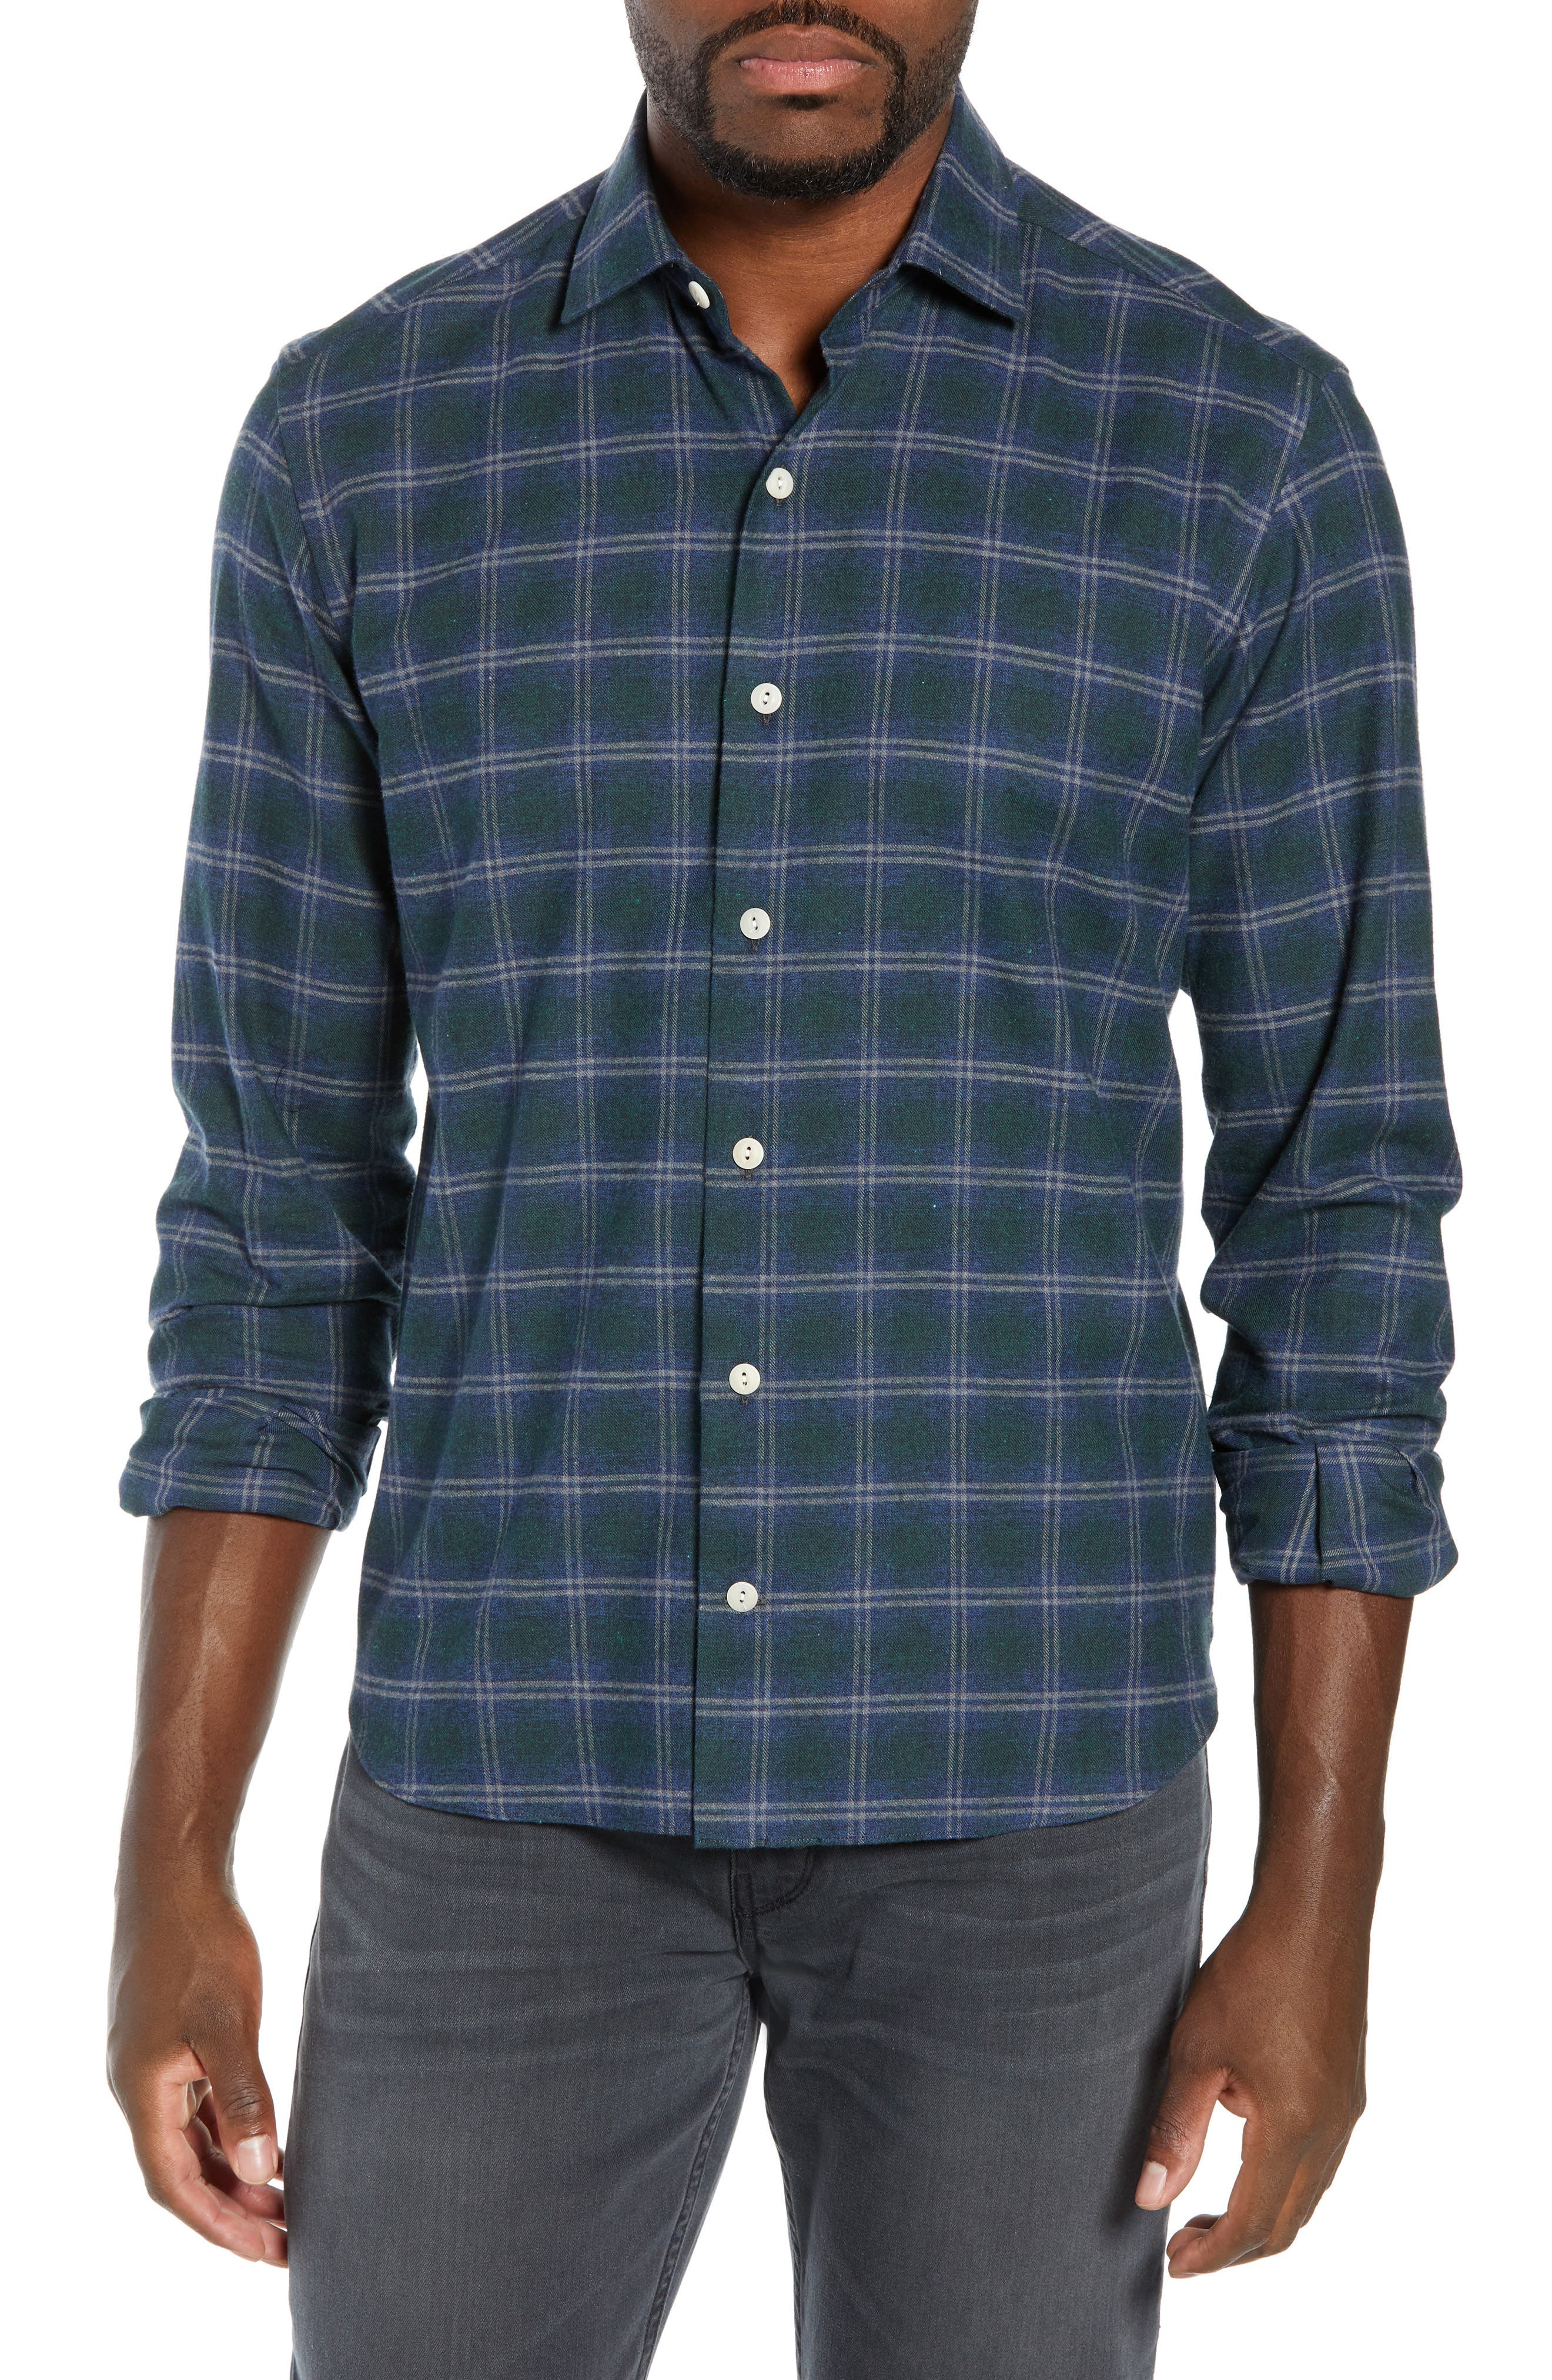 CULTURATA Supersoft Tailored Fit Plaid Sport Shirt in Navy